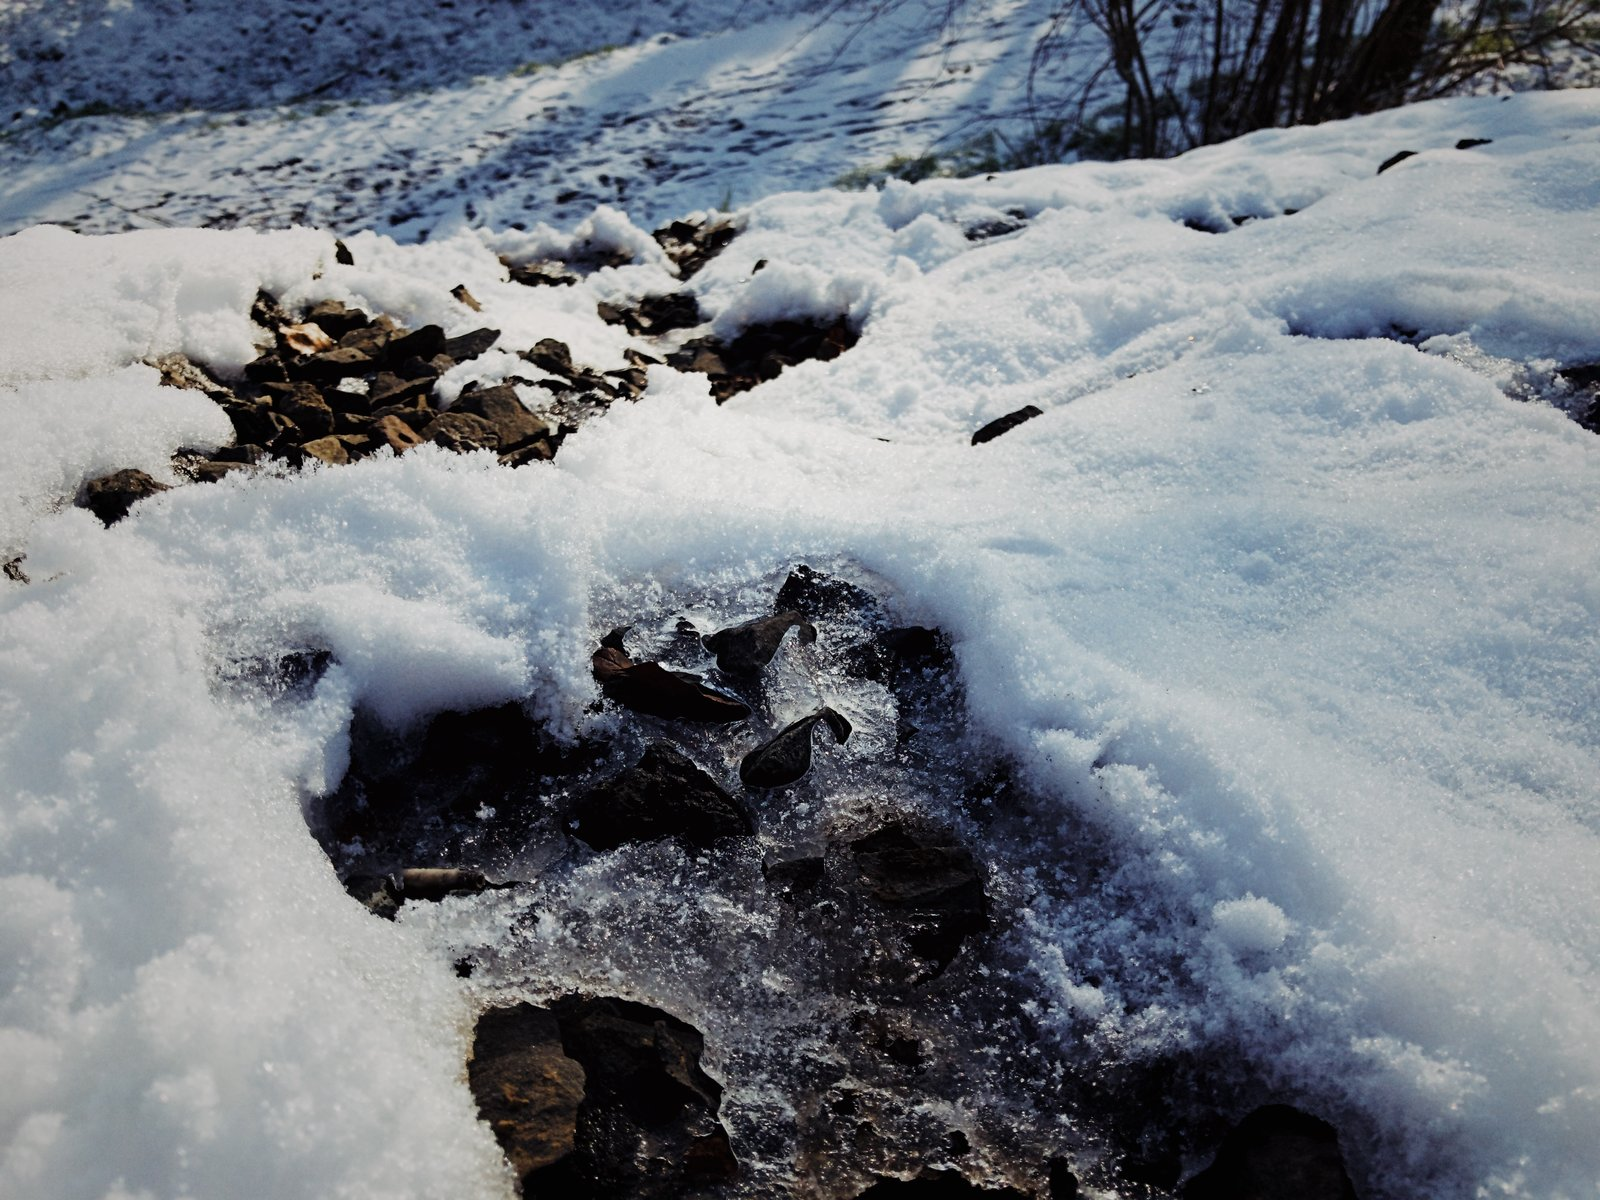 Ice and snow crust a rocky embankment  Photo 10 of 10 in VSCO RAW/X and Topo Designs